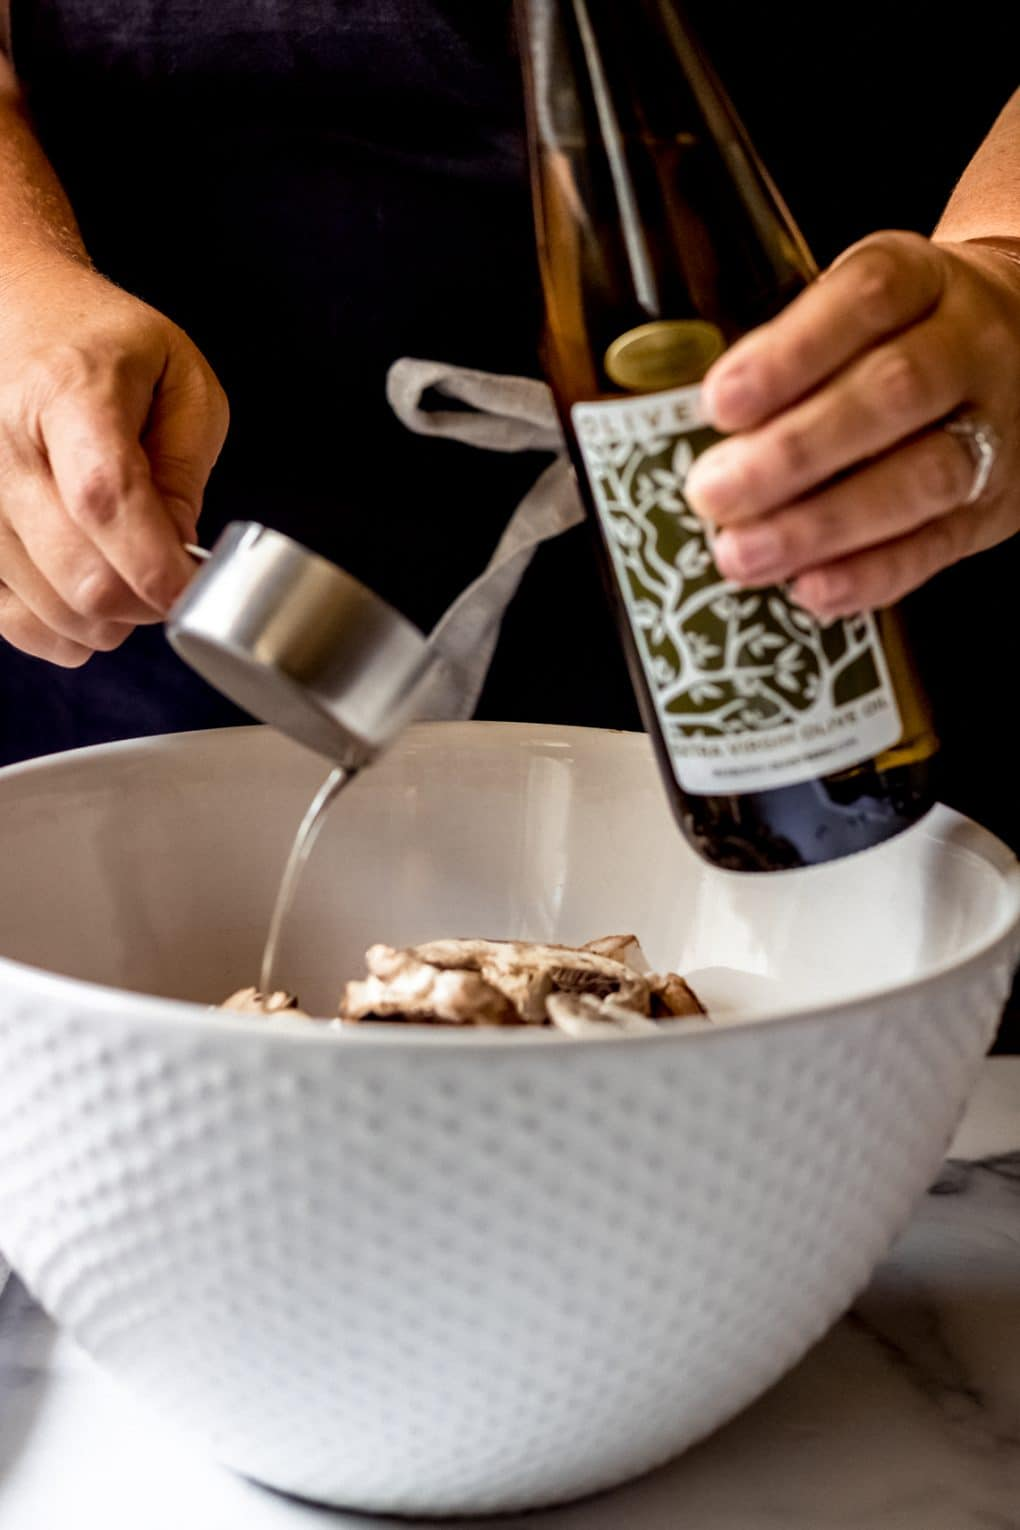 a woman pouring mushroom garlic olive oil into a large bowl